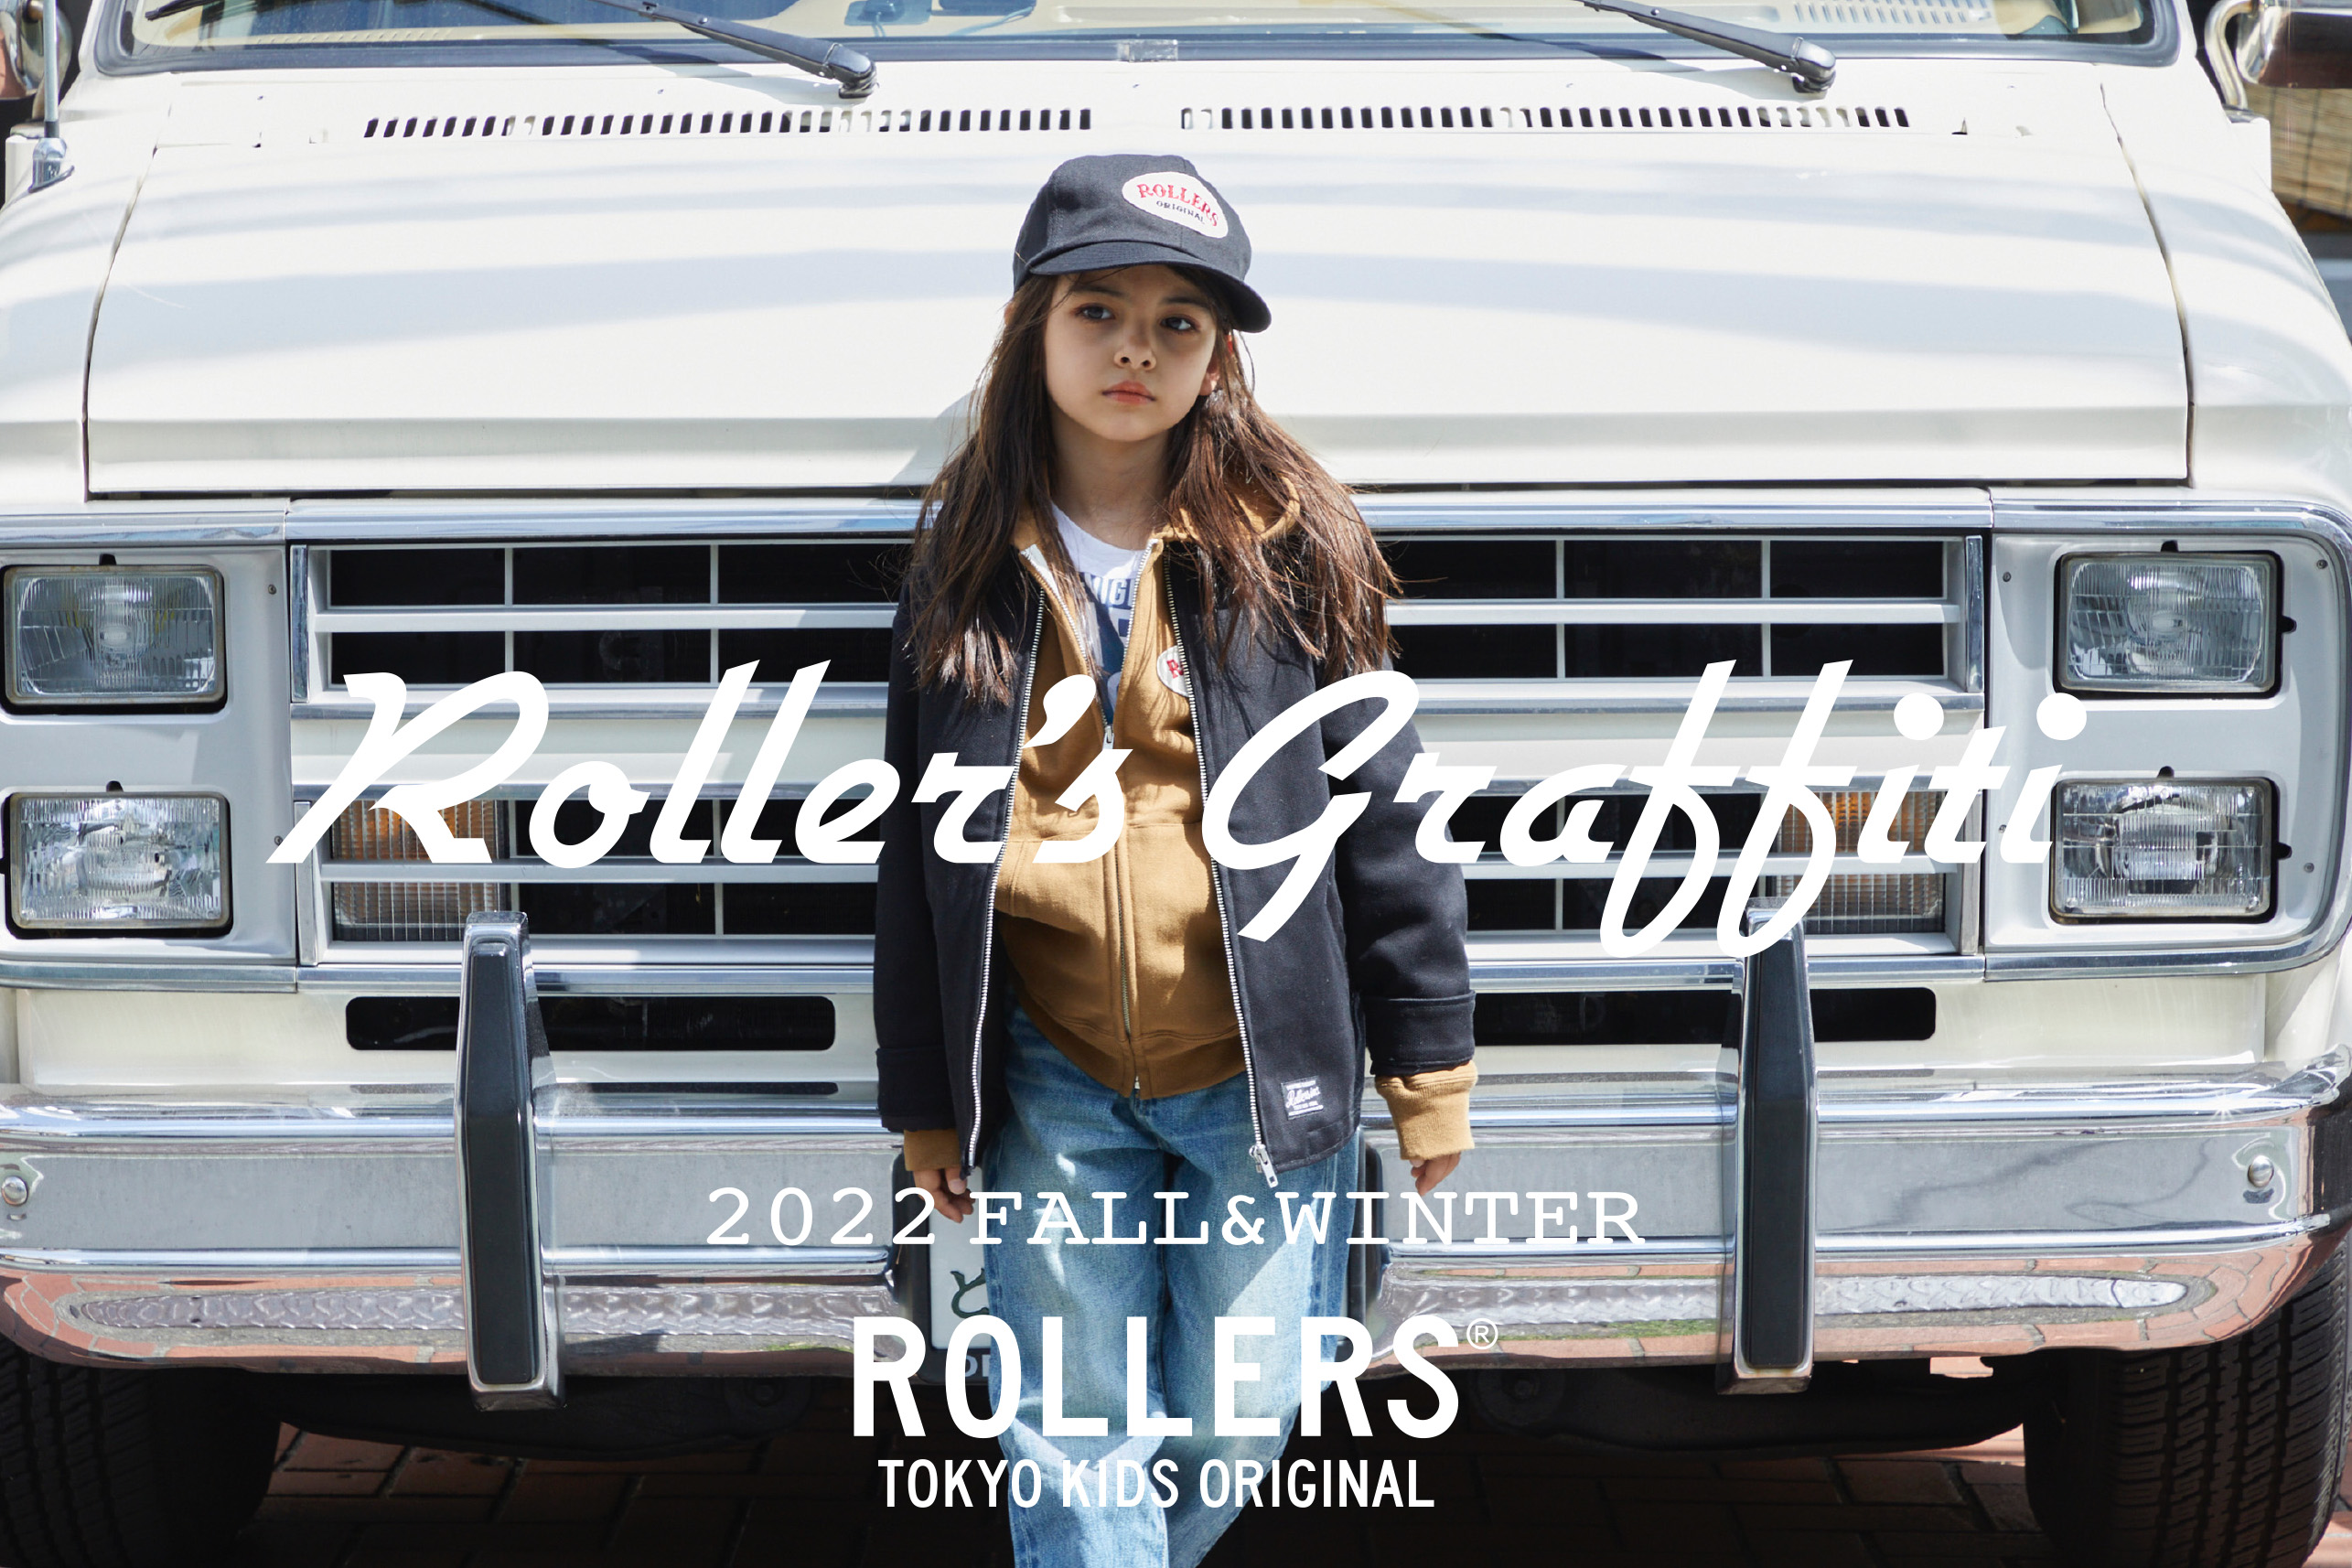 ROLLERS Web store